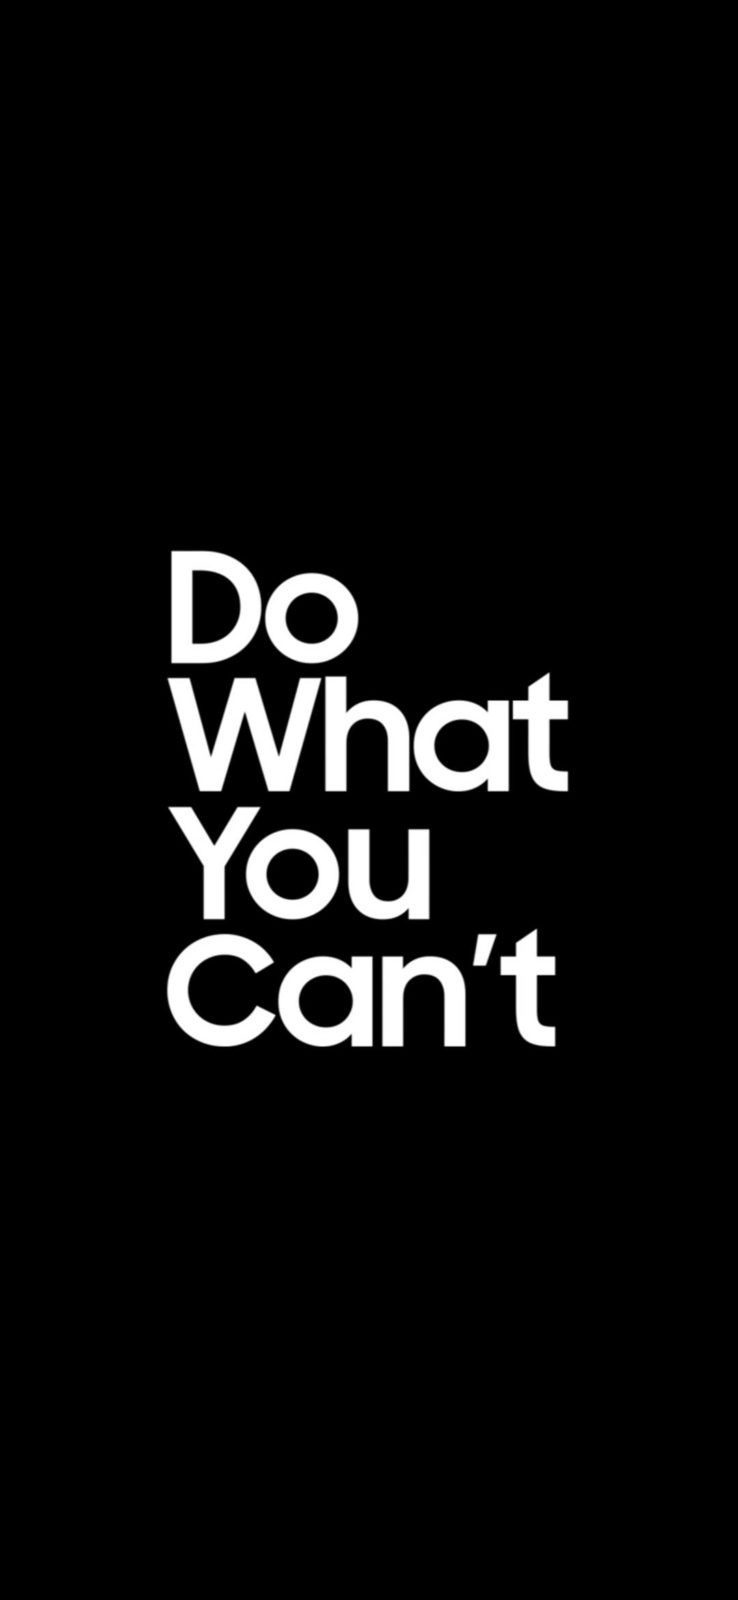 Do What You Cant Wallpaper